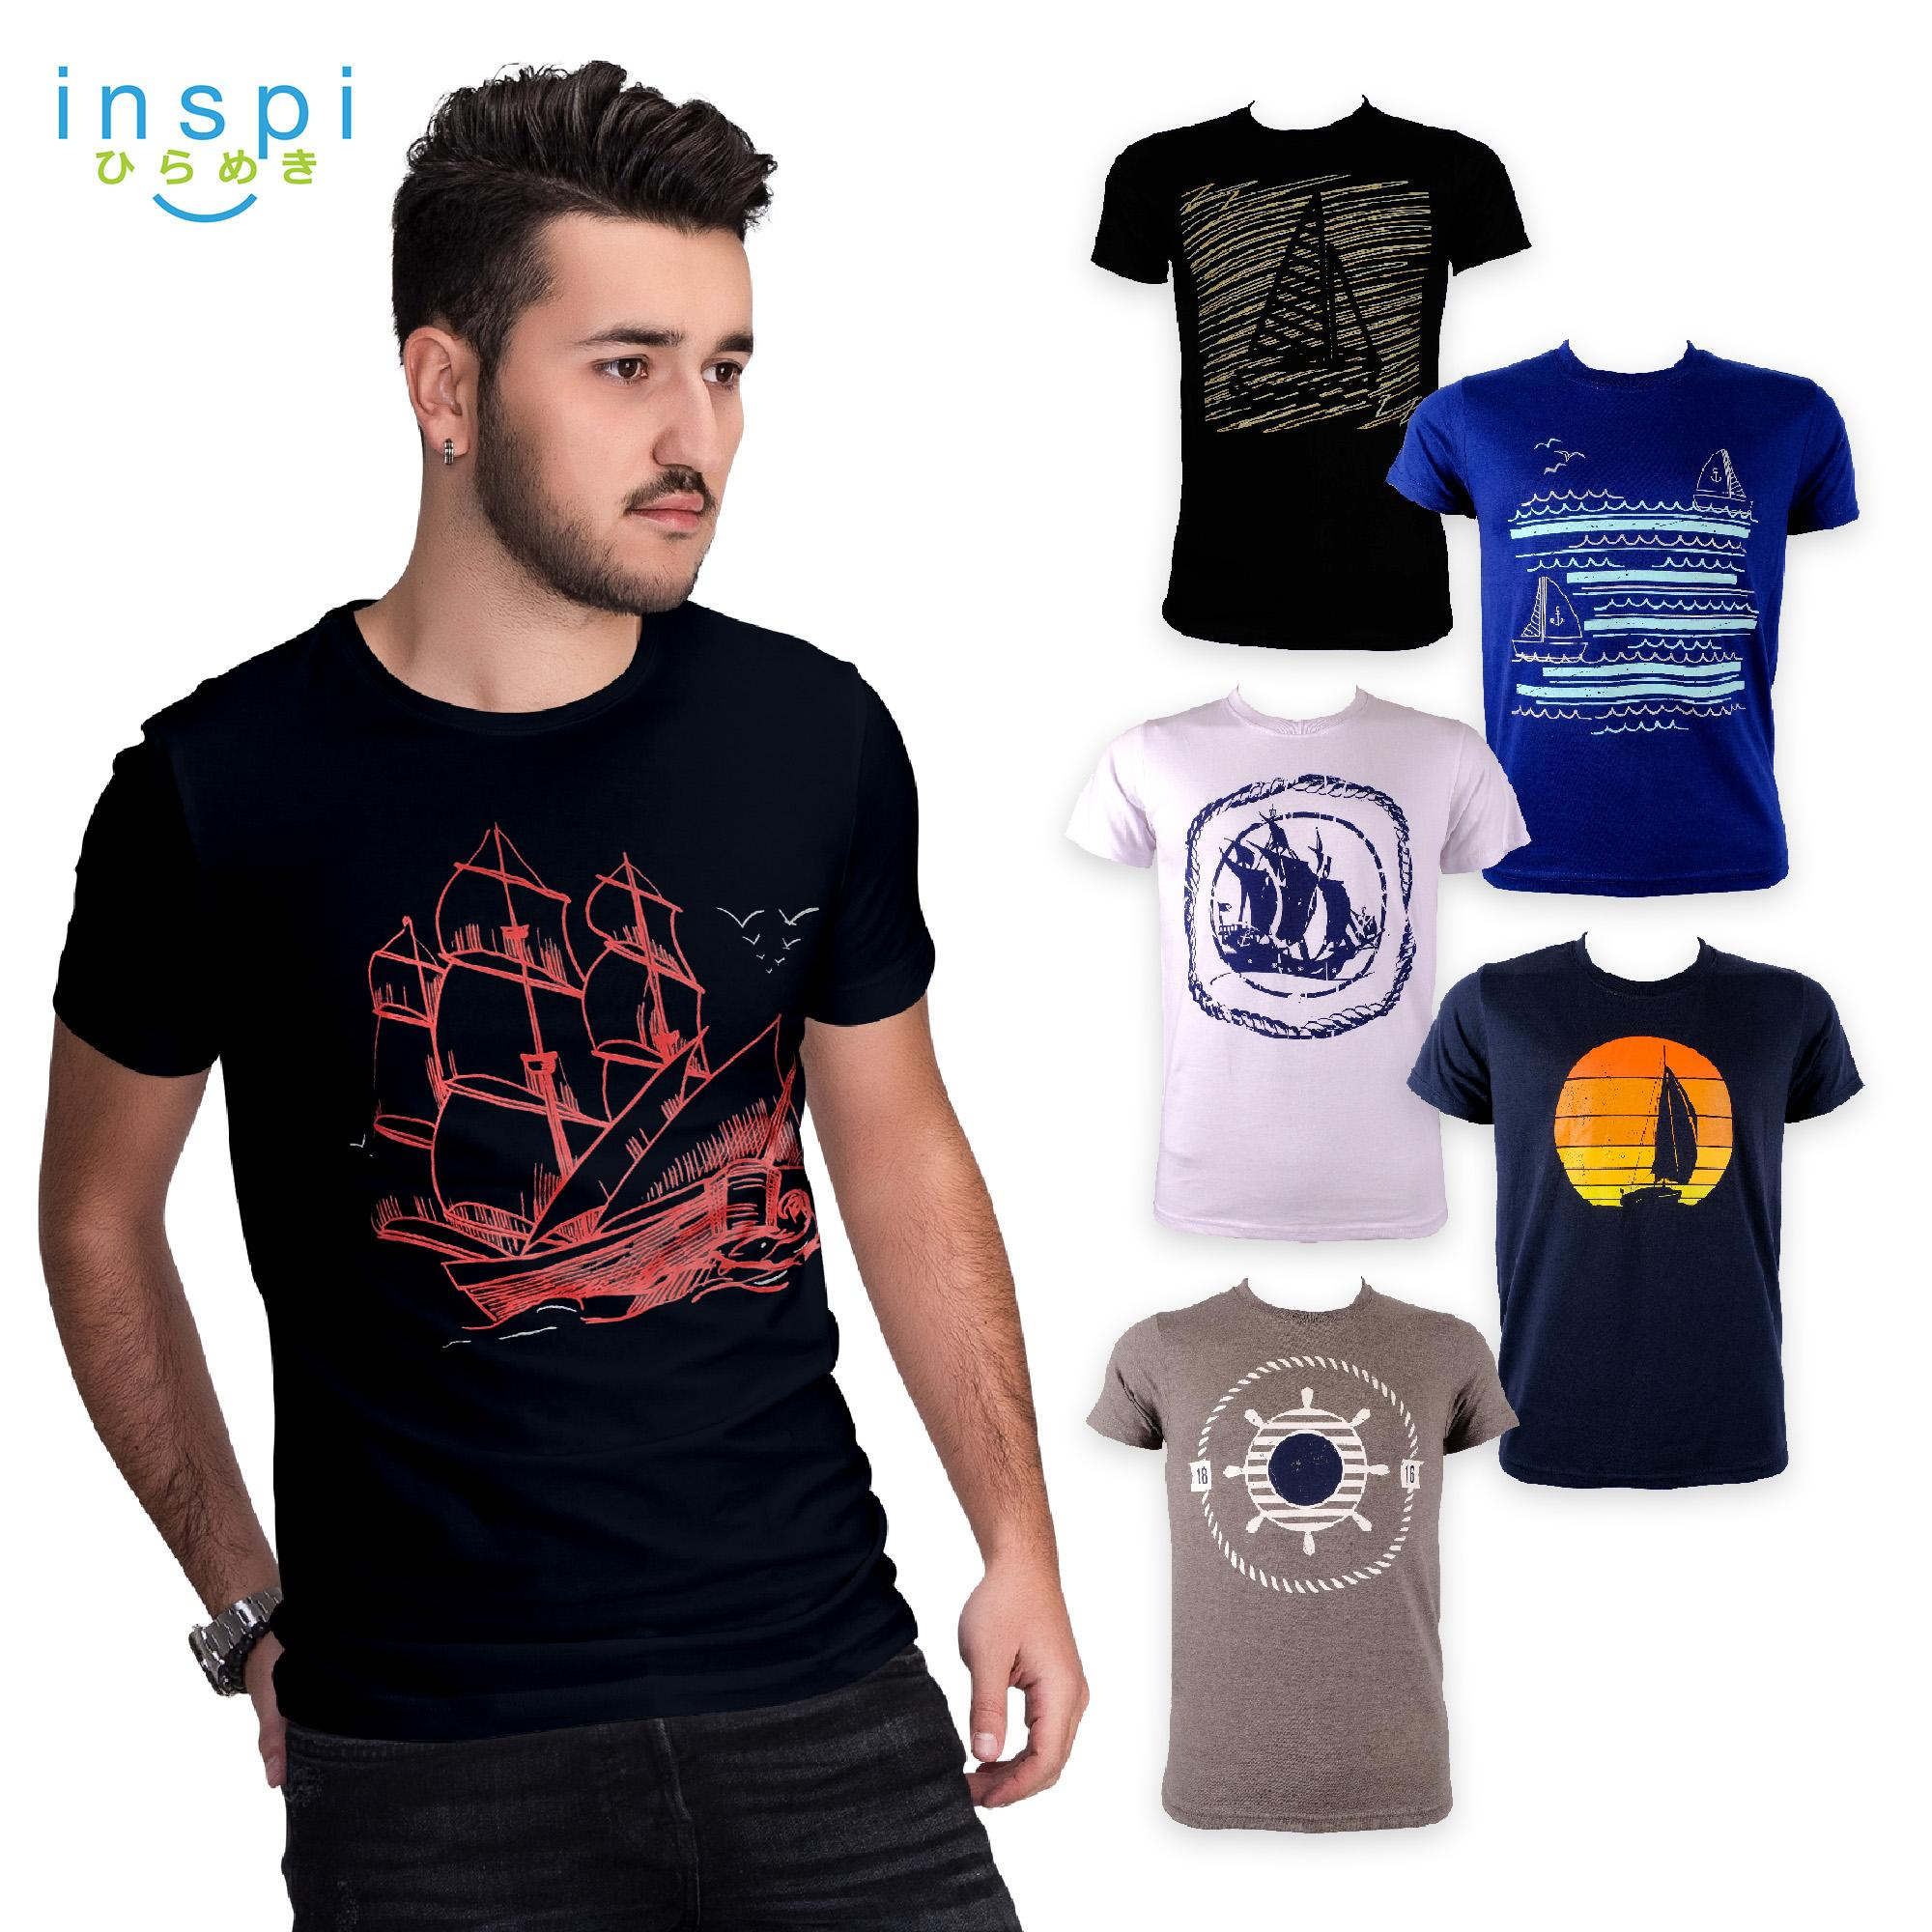 45b7c5d0c774 INSPI Tees Sailing Collection tshirt printed graphic tee Mens t shirt shirts  for men tshirts sale